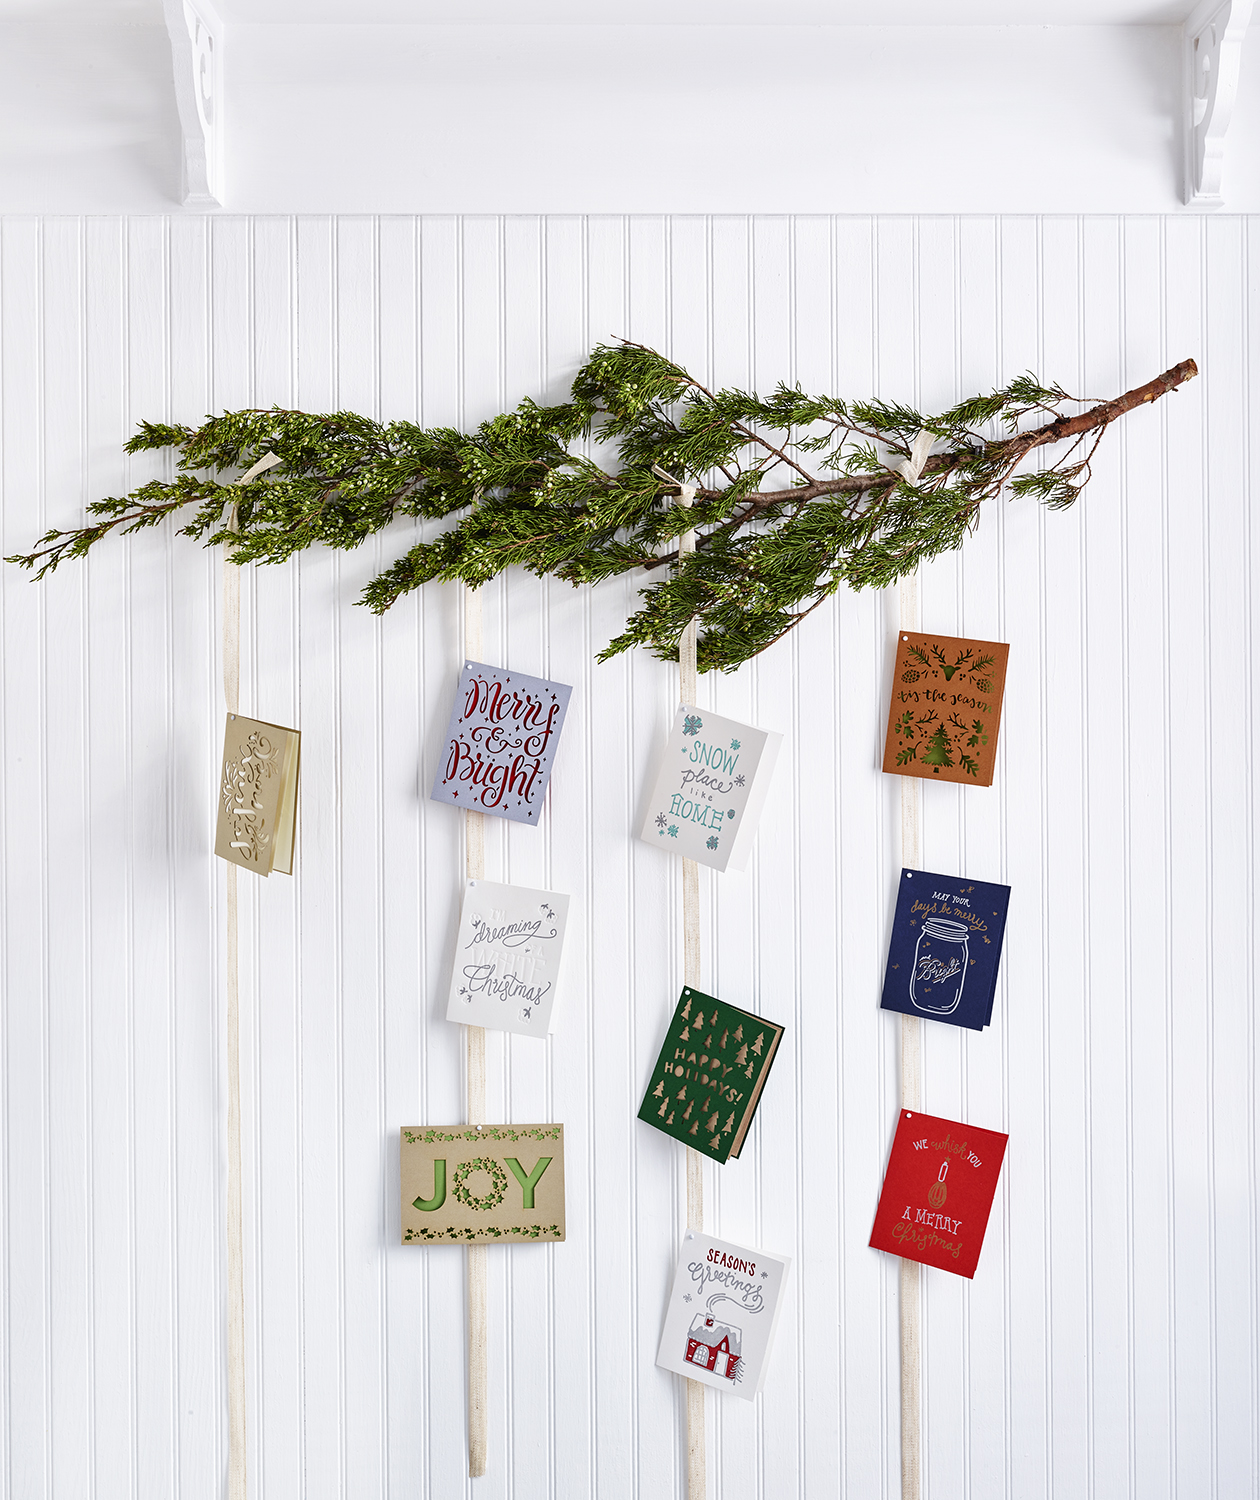 Holiday cards on wall with pine branch